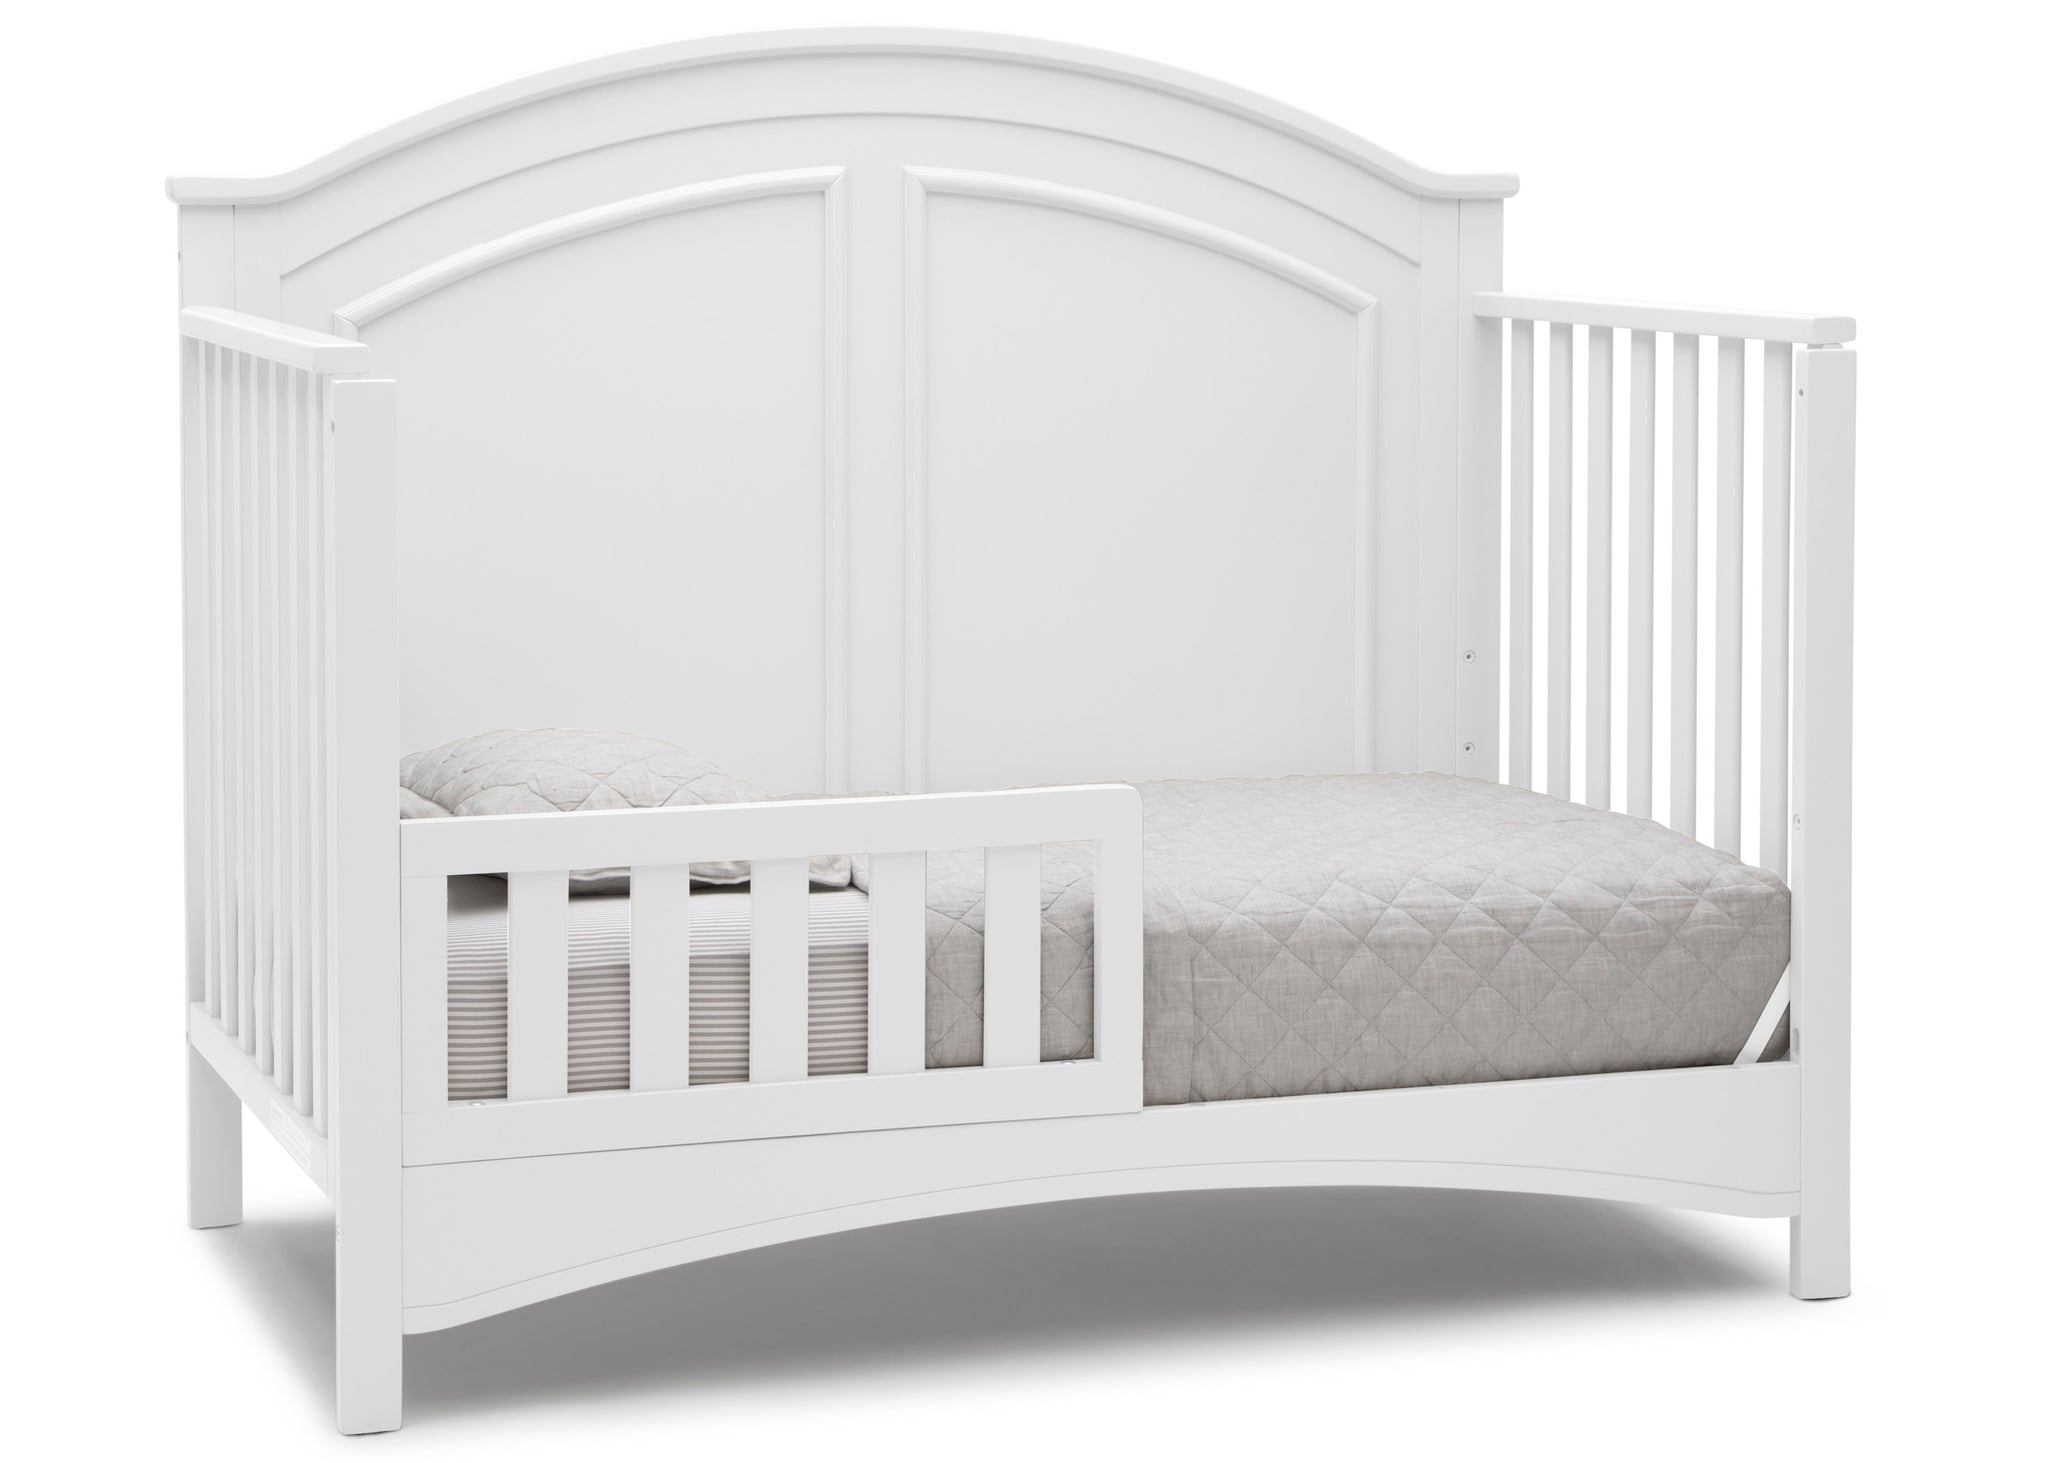 Delta Children Bianca White (130) Perry 6-in-1 Convertible Crib, Right Toddler Bed Silo View